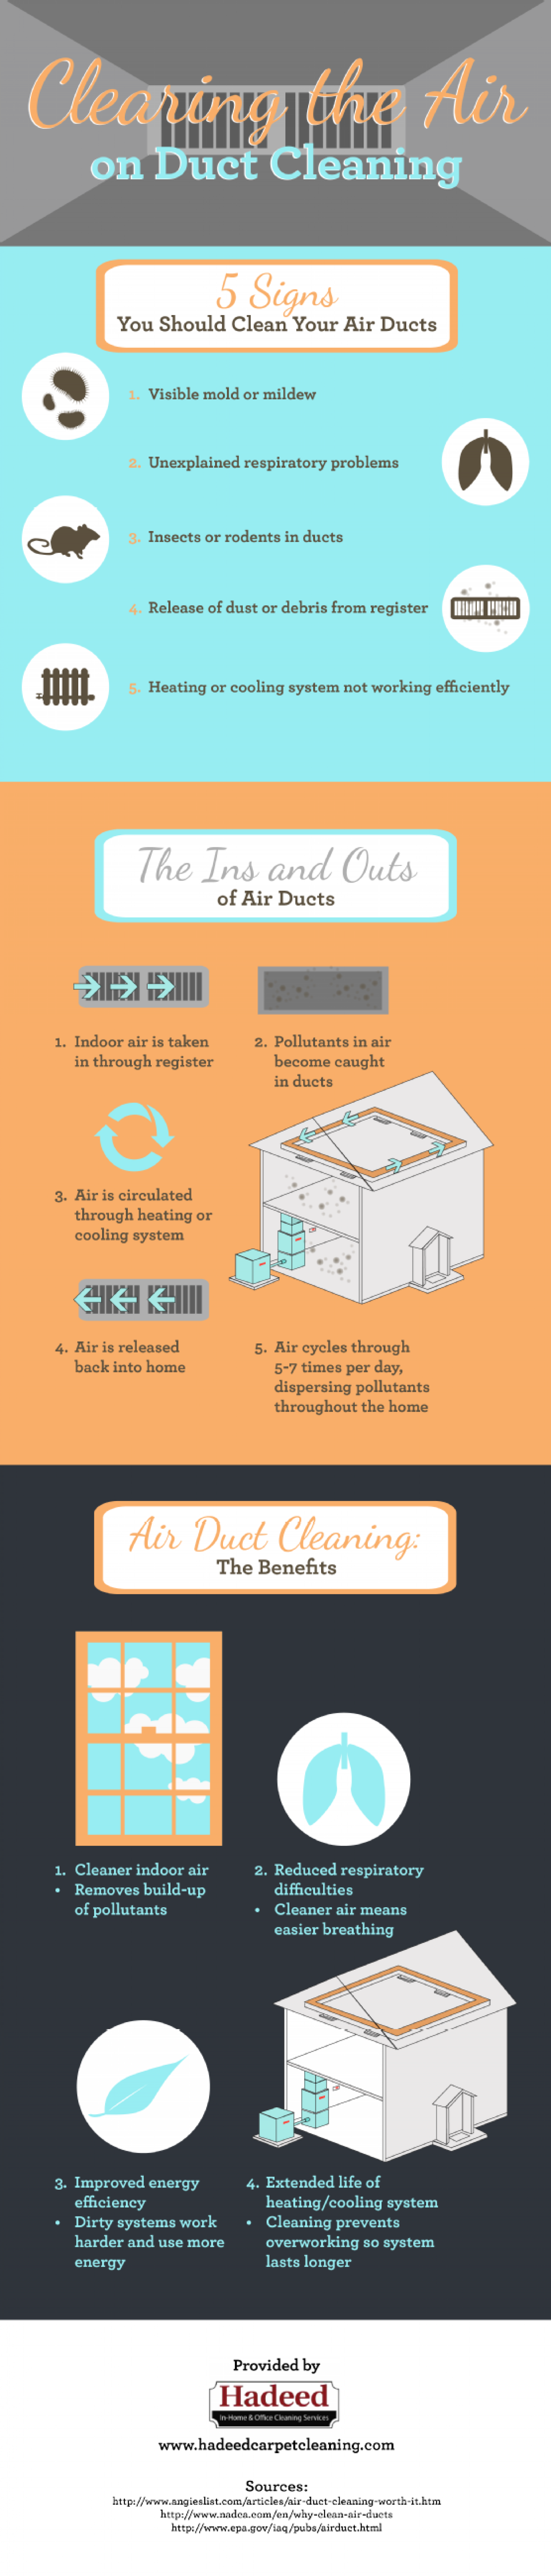 Clearing the Air on Duct Cleaning Infographic